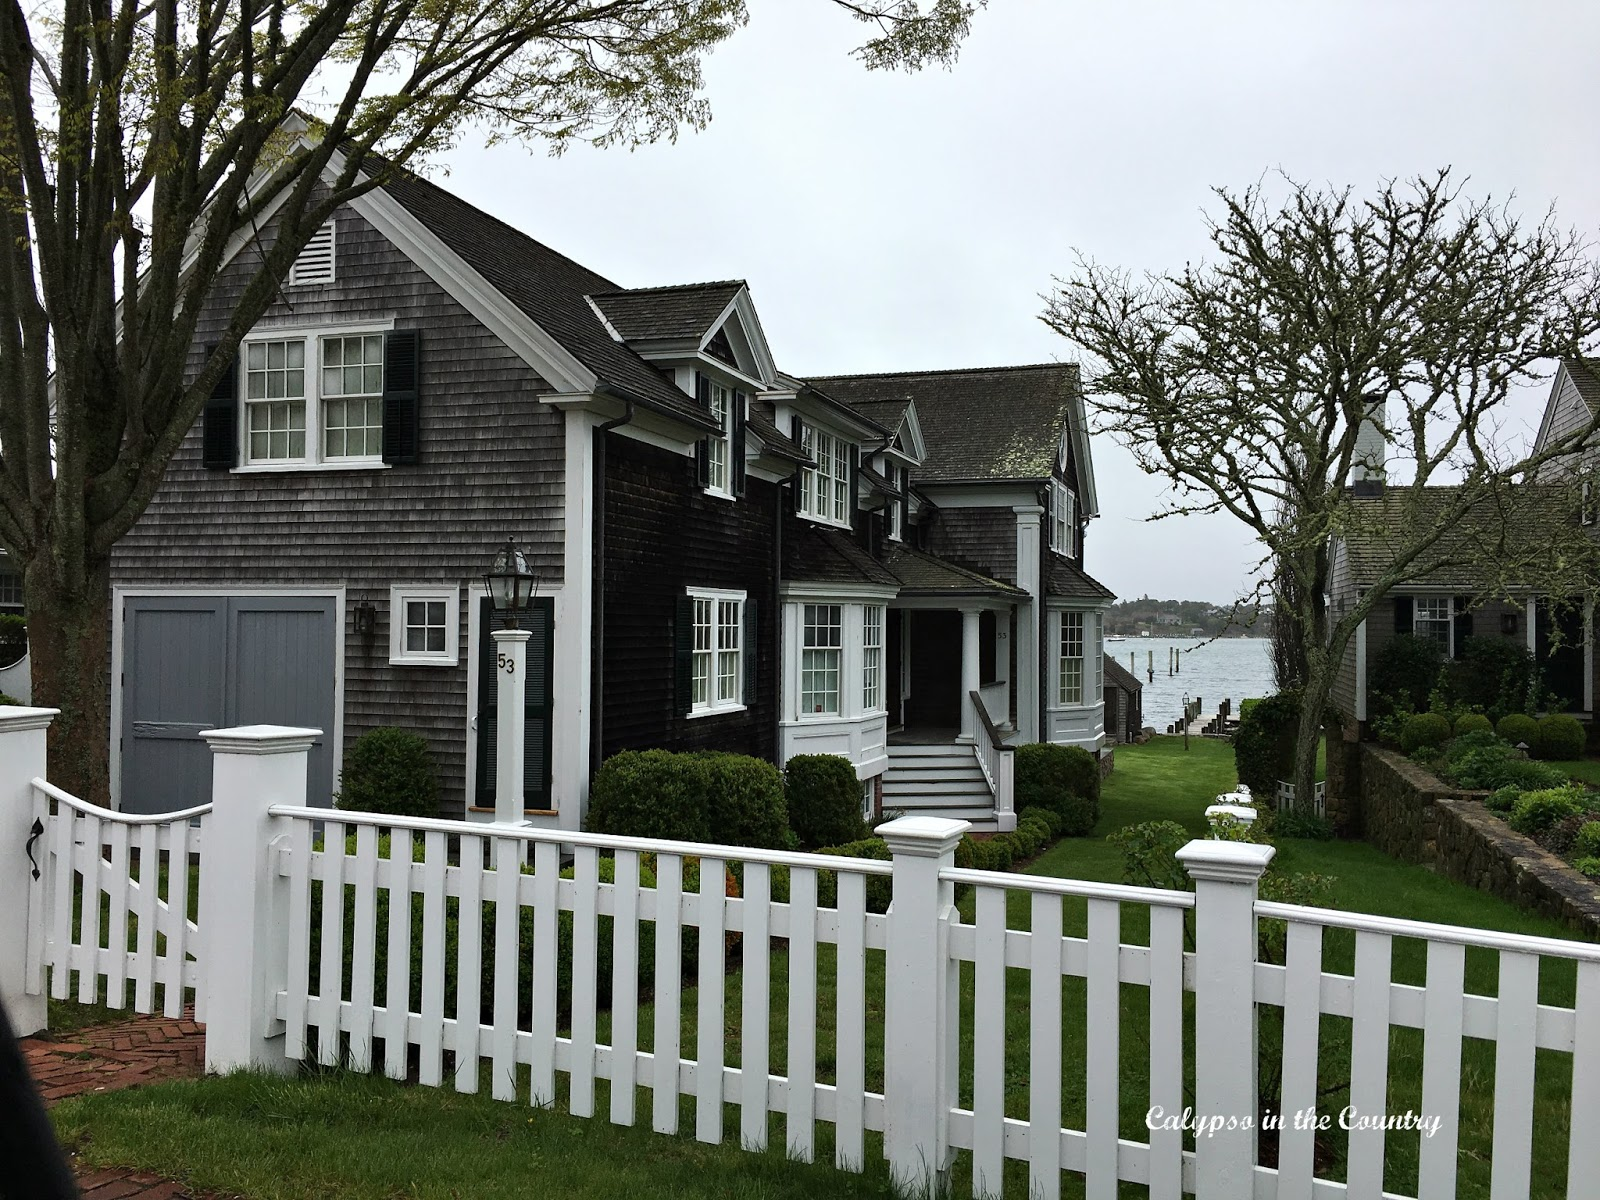 Waterfront Home - Edgartown, Martha's Vineyard